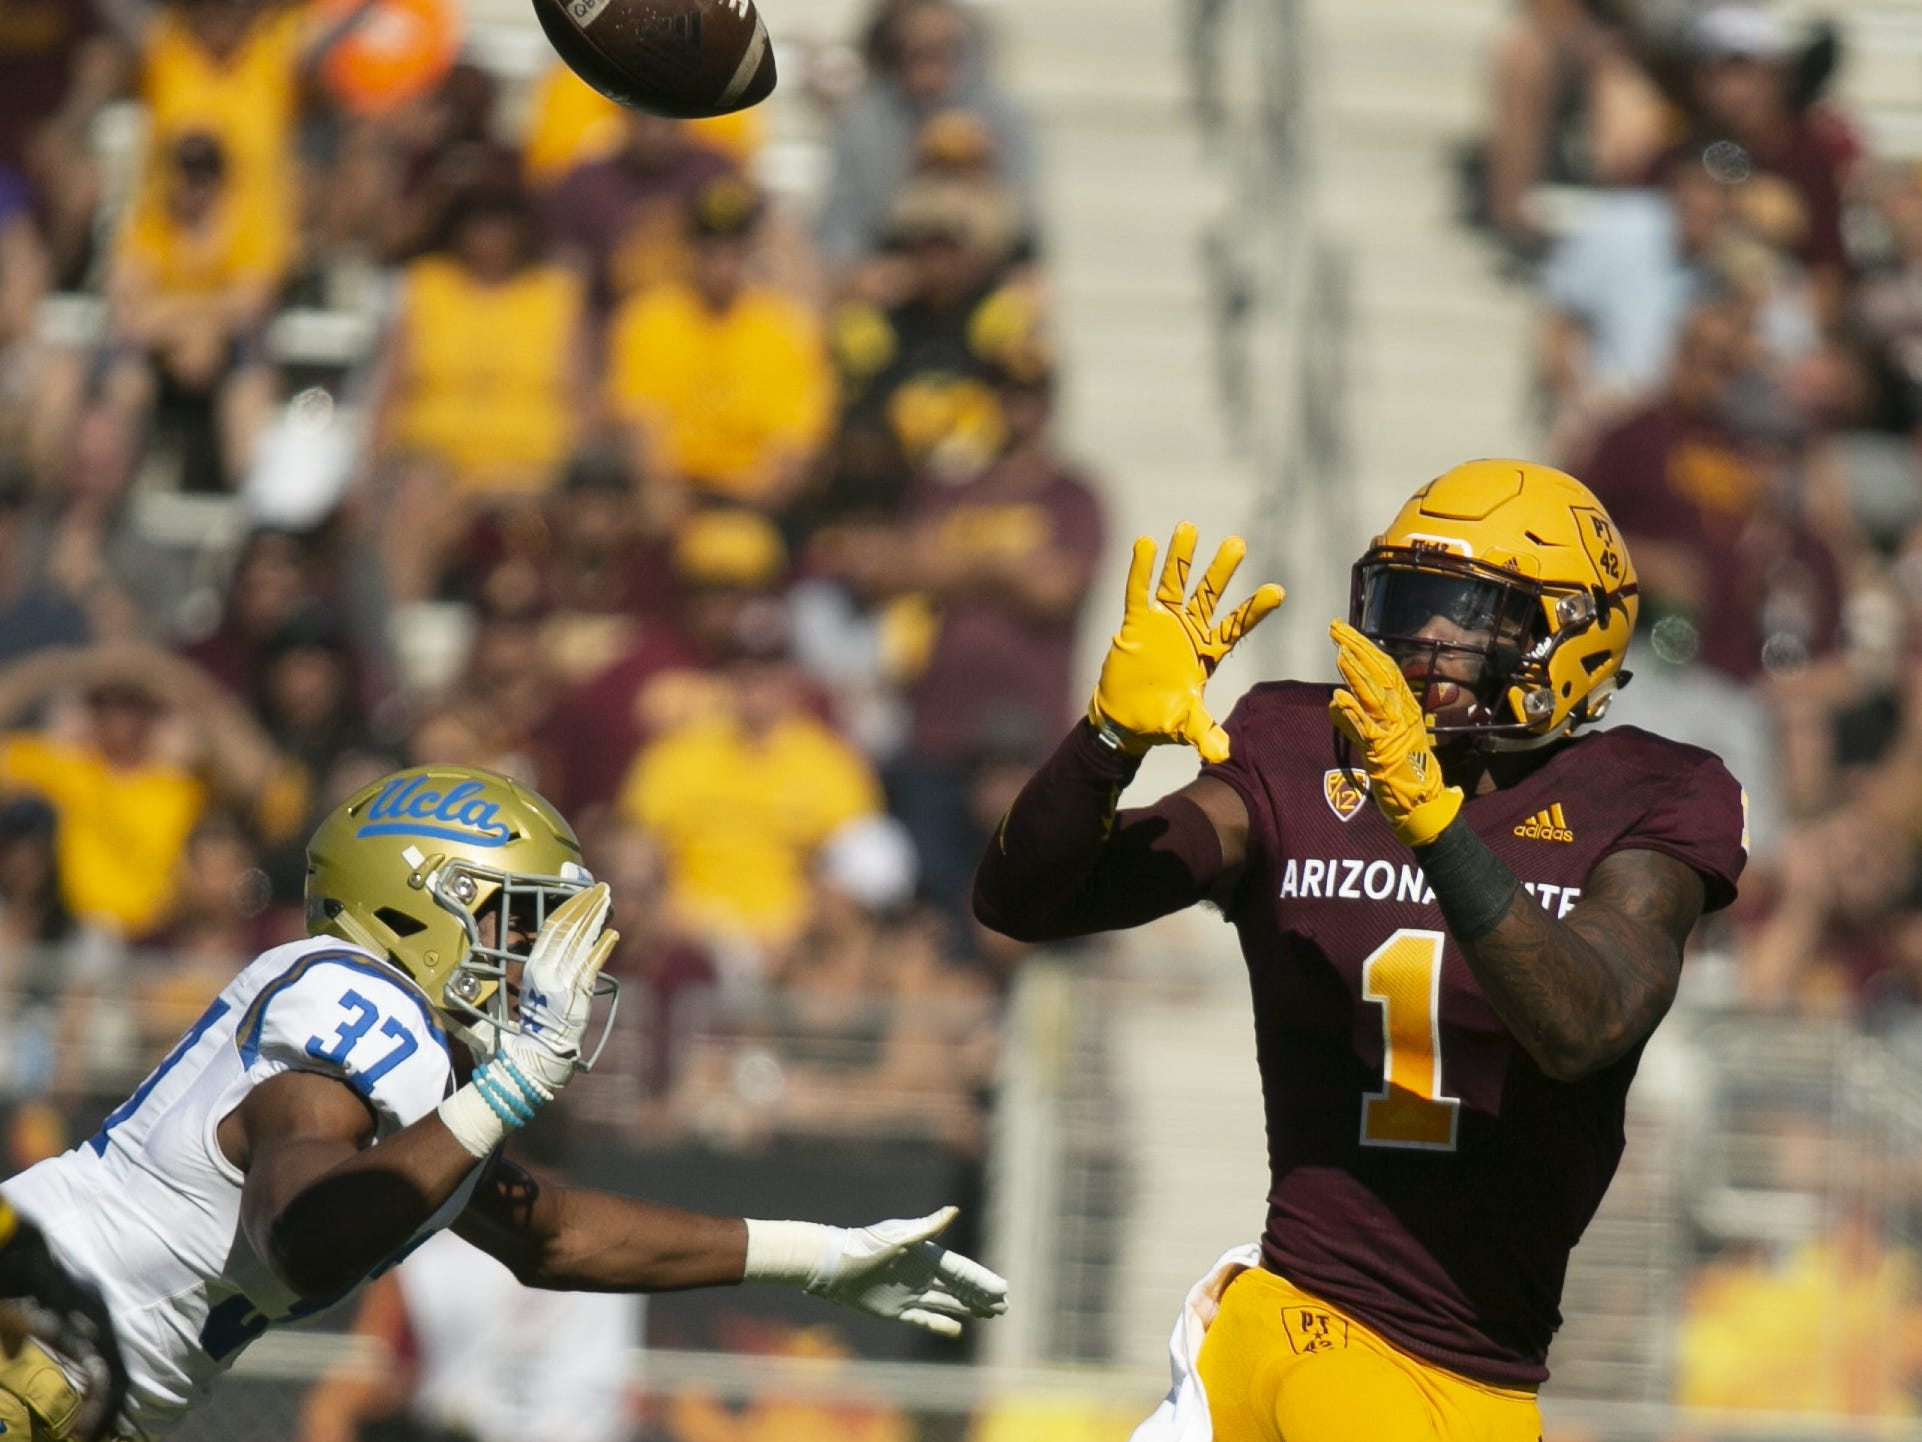 ASU wide receiver N'Keal Harry makes a catch as UCLA safety Quentin Lake defends during the first quarter of the PAC-12 college football game against UCLA at Sun Devil Stadium in Tempe on Saturday, November 10, 2018.